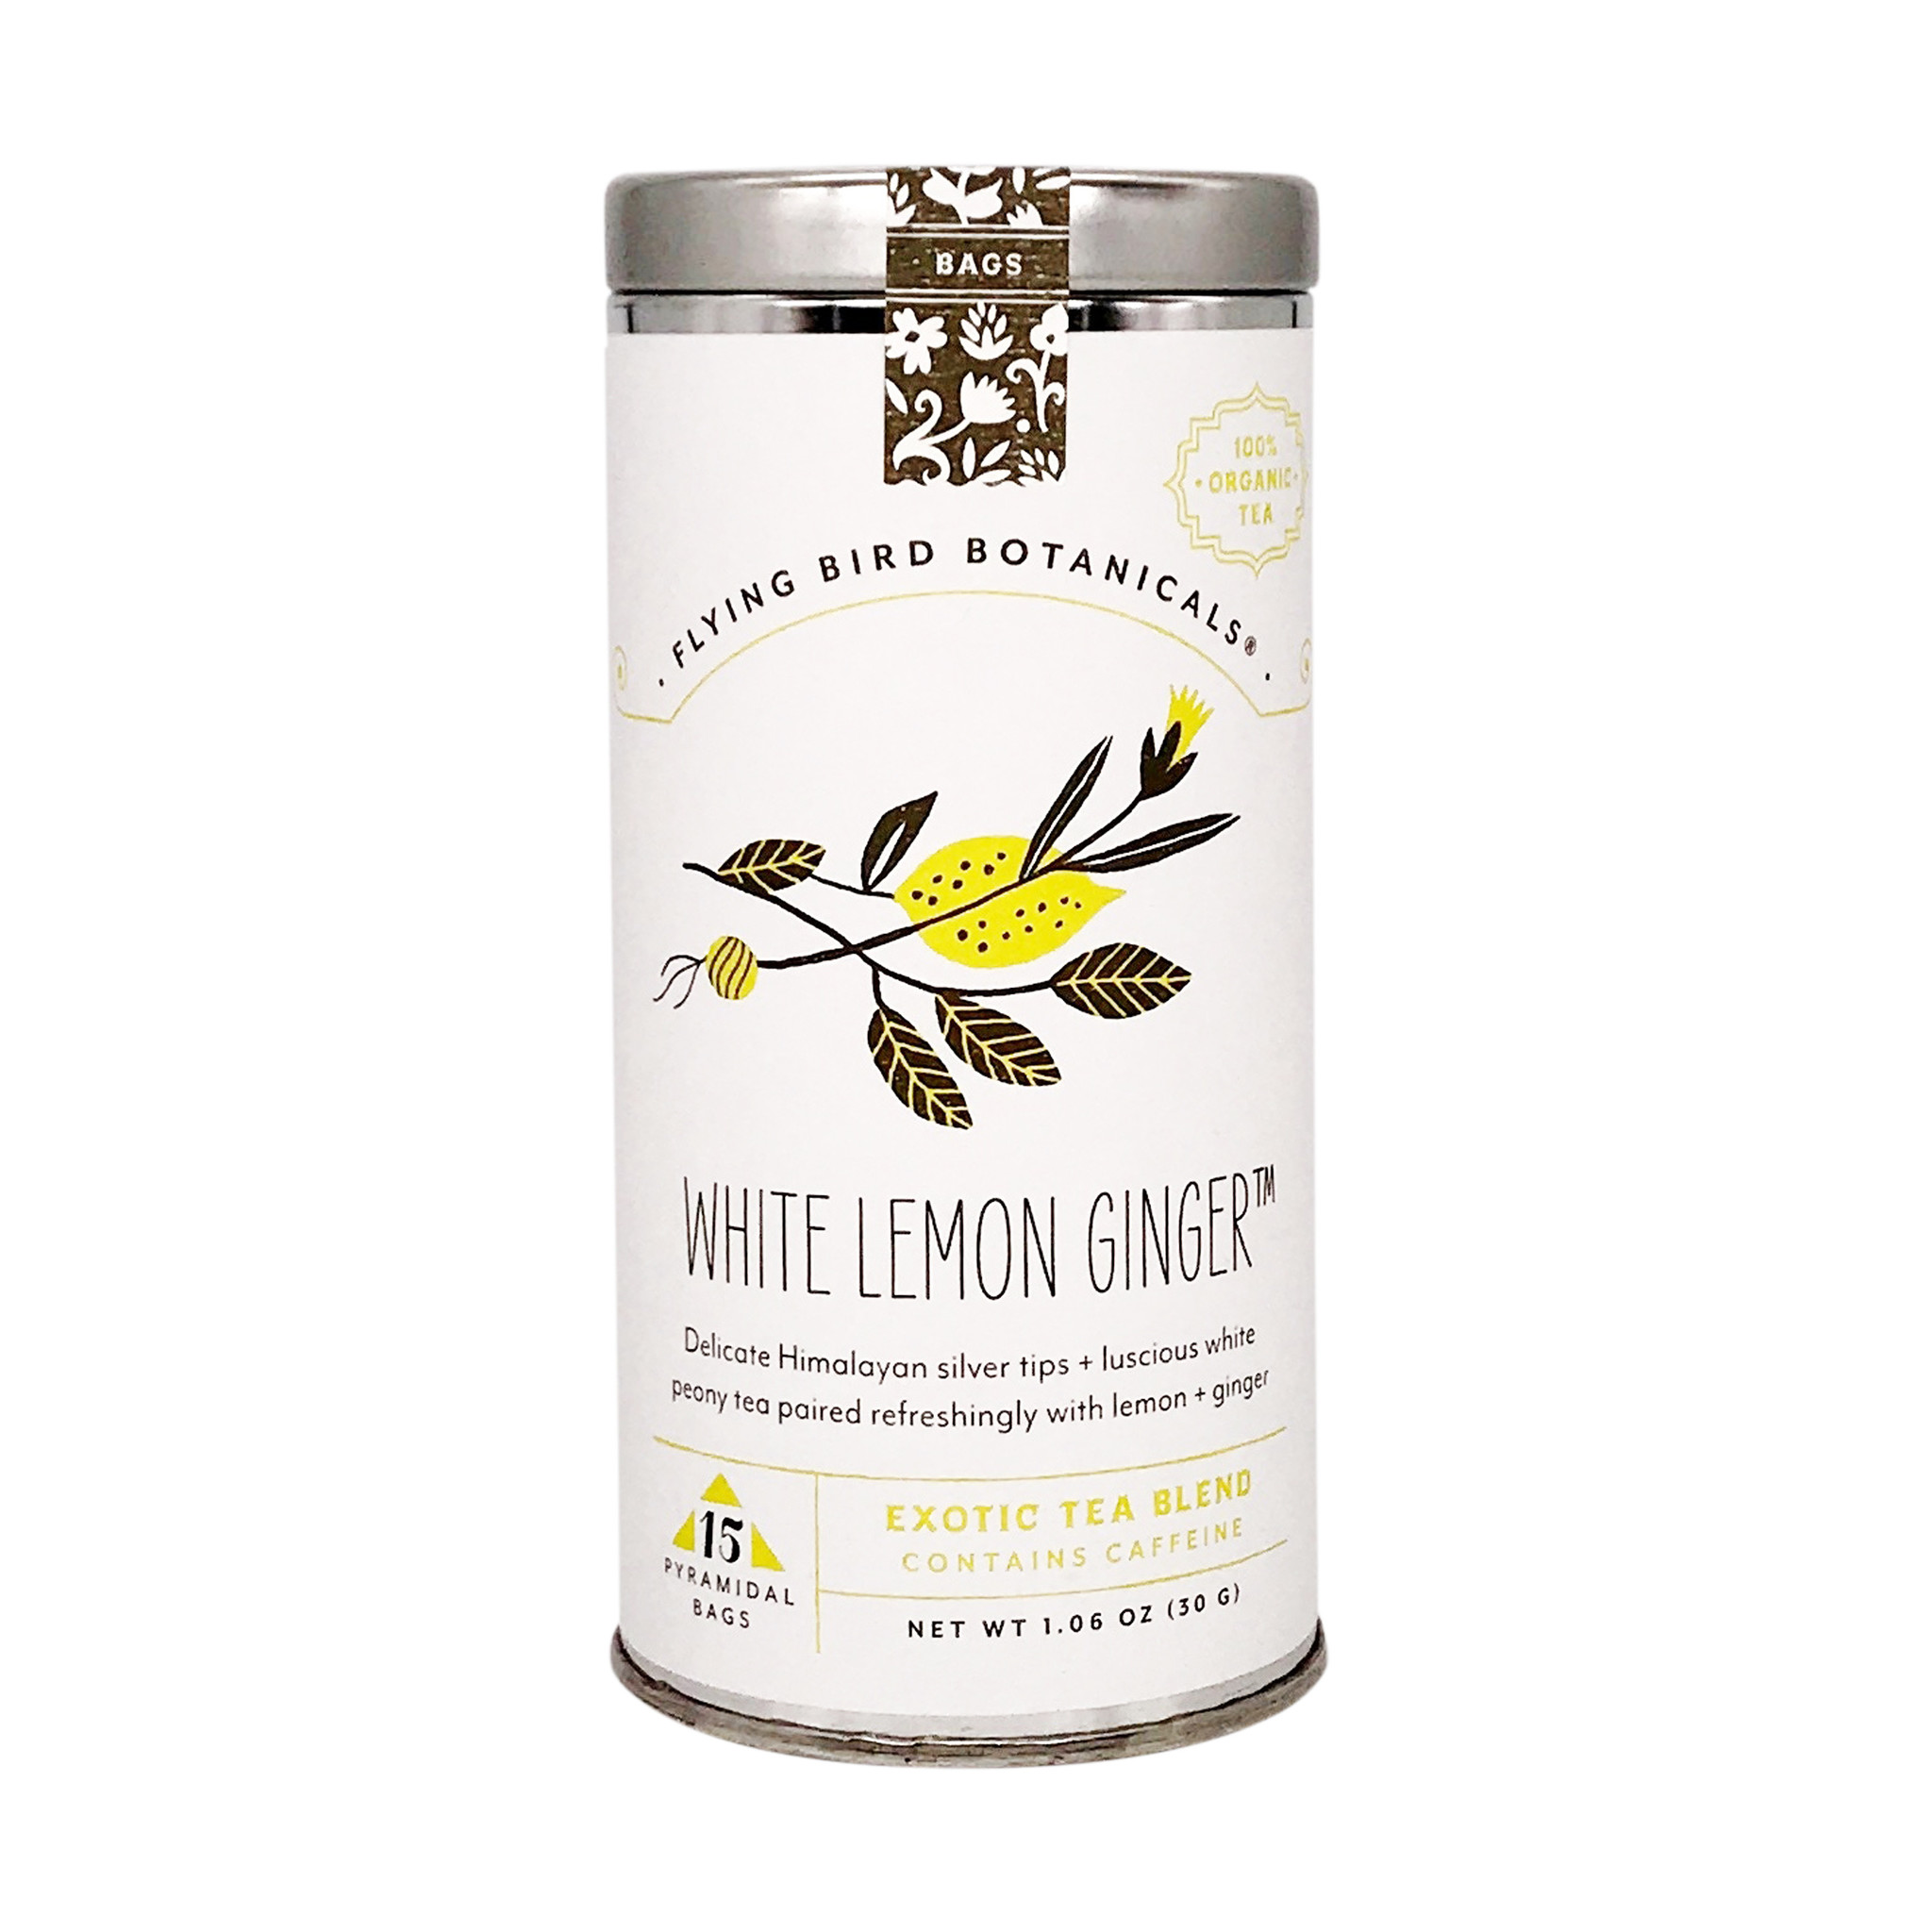 Flying Bird Botanicals White Lemon Ginger - 15 bag tin